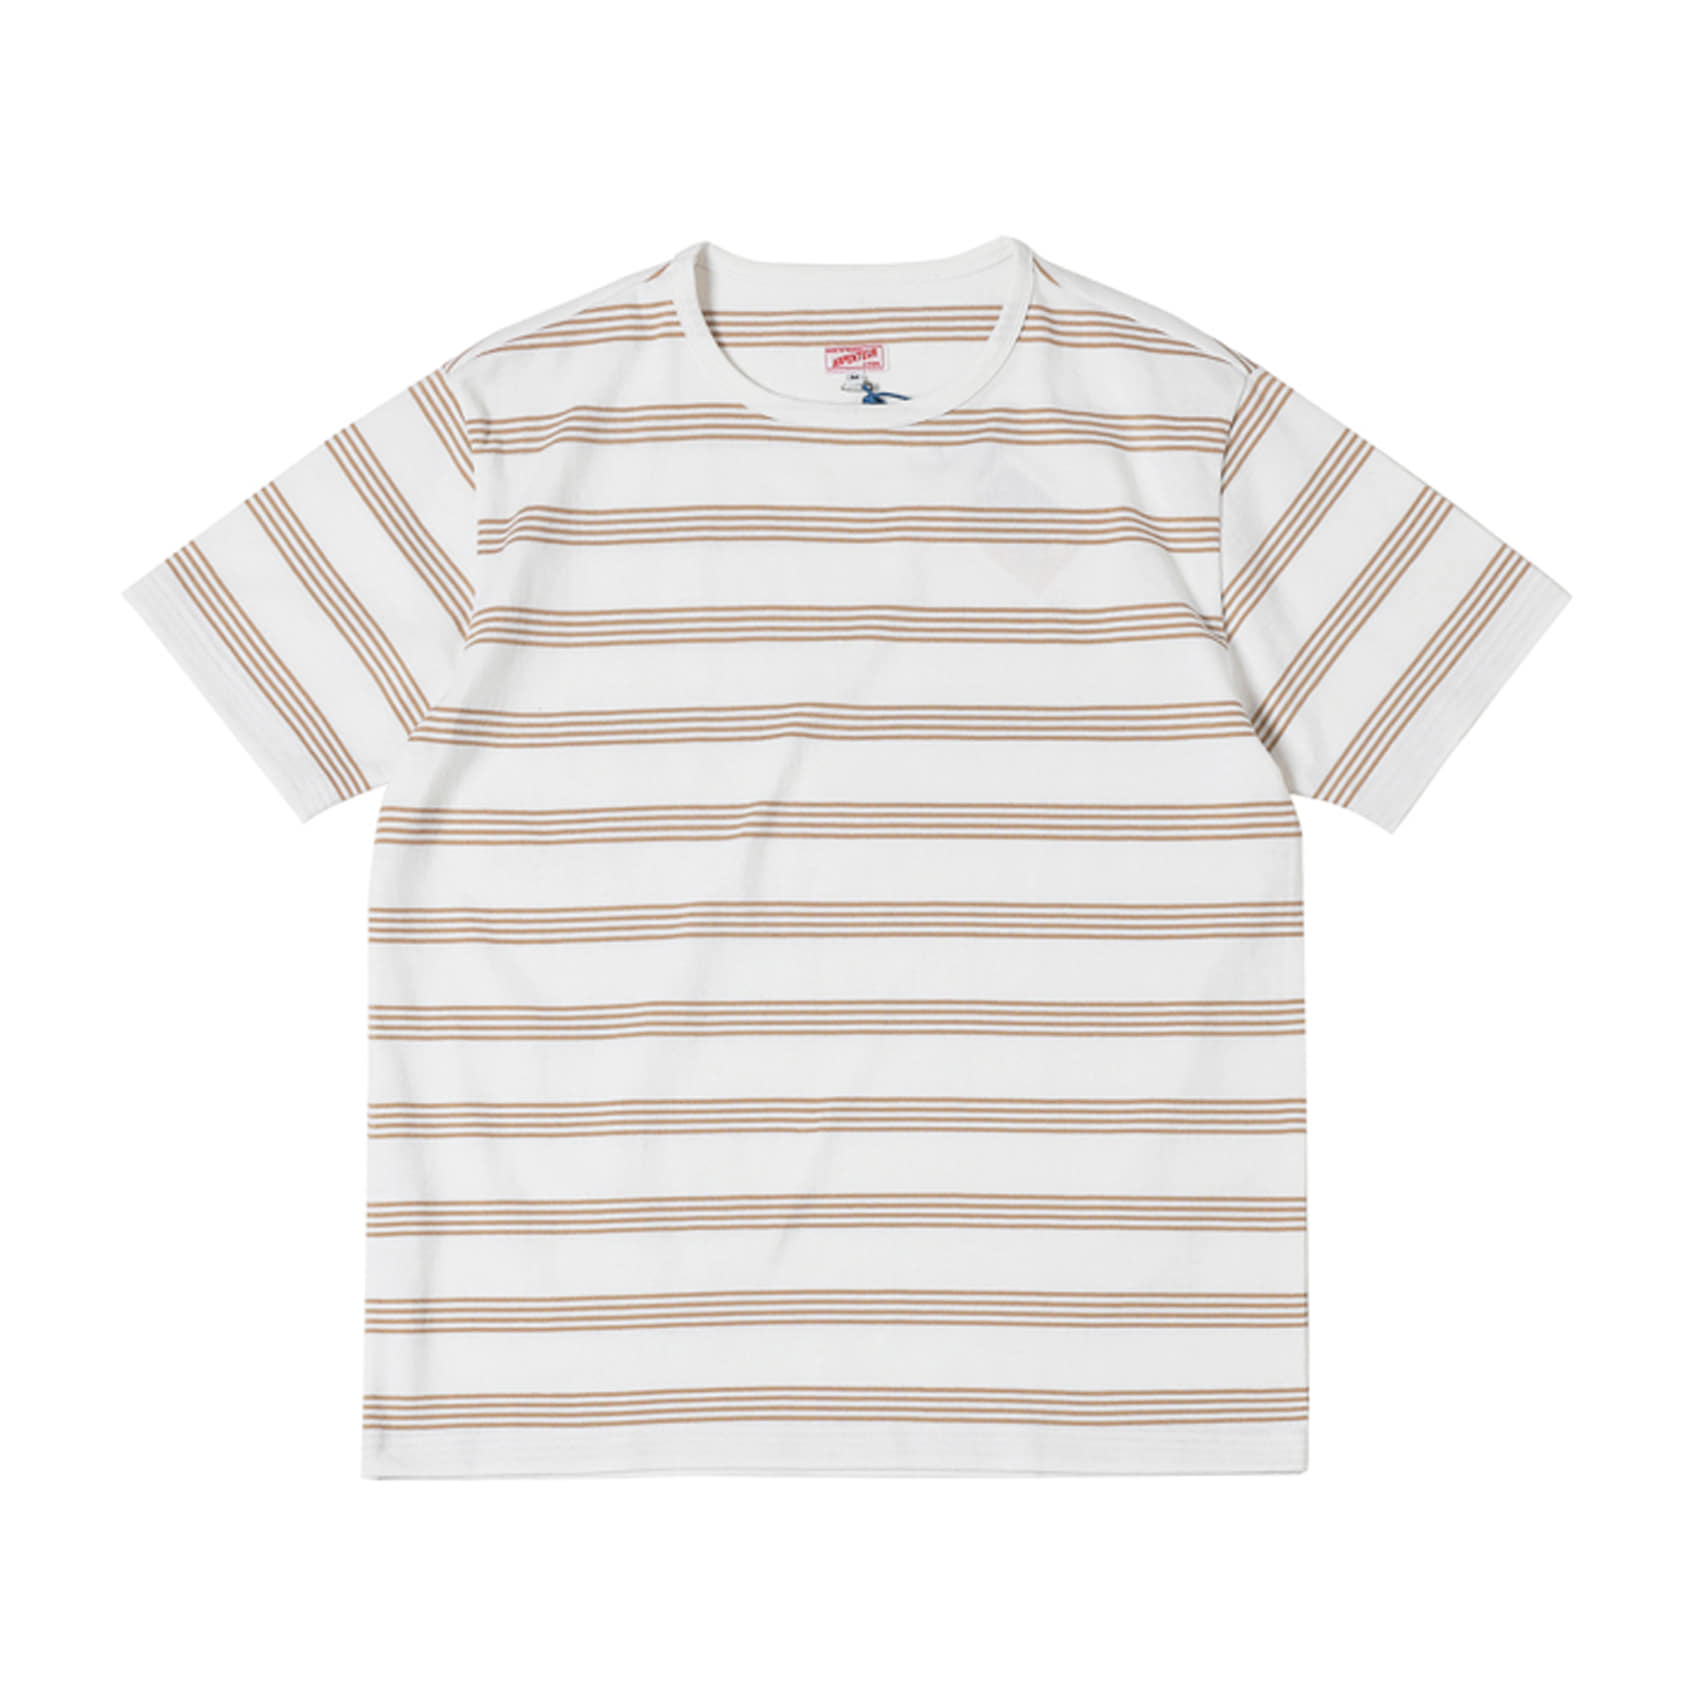 MATCH T-SHIRT - SAND / WHITE